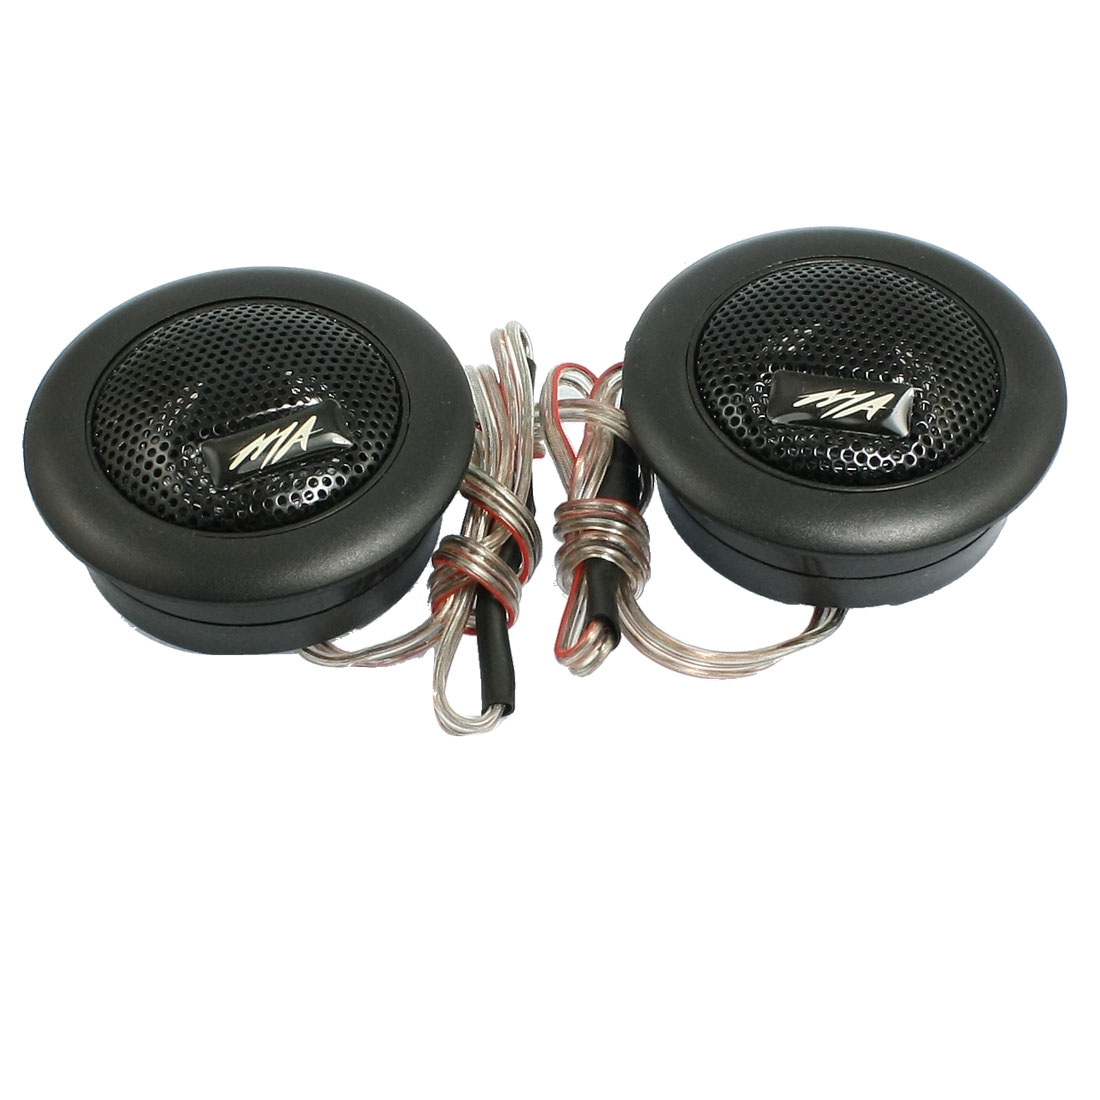 2 Pcs Black Dome Car Auto Audio System Tweeter Speakers 120W